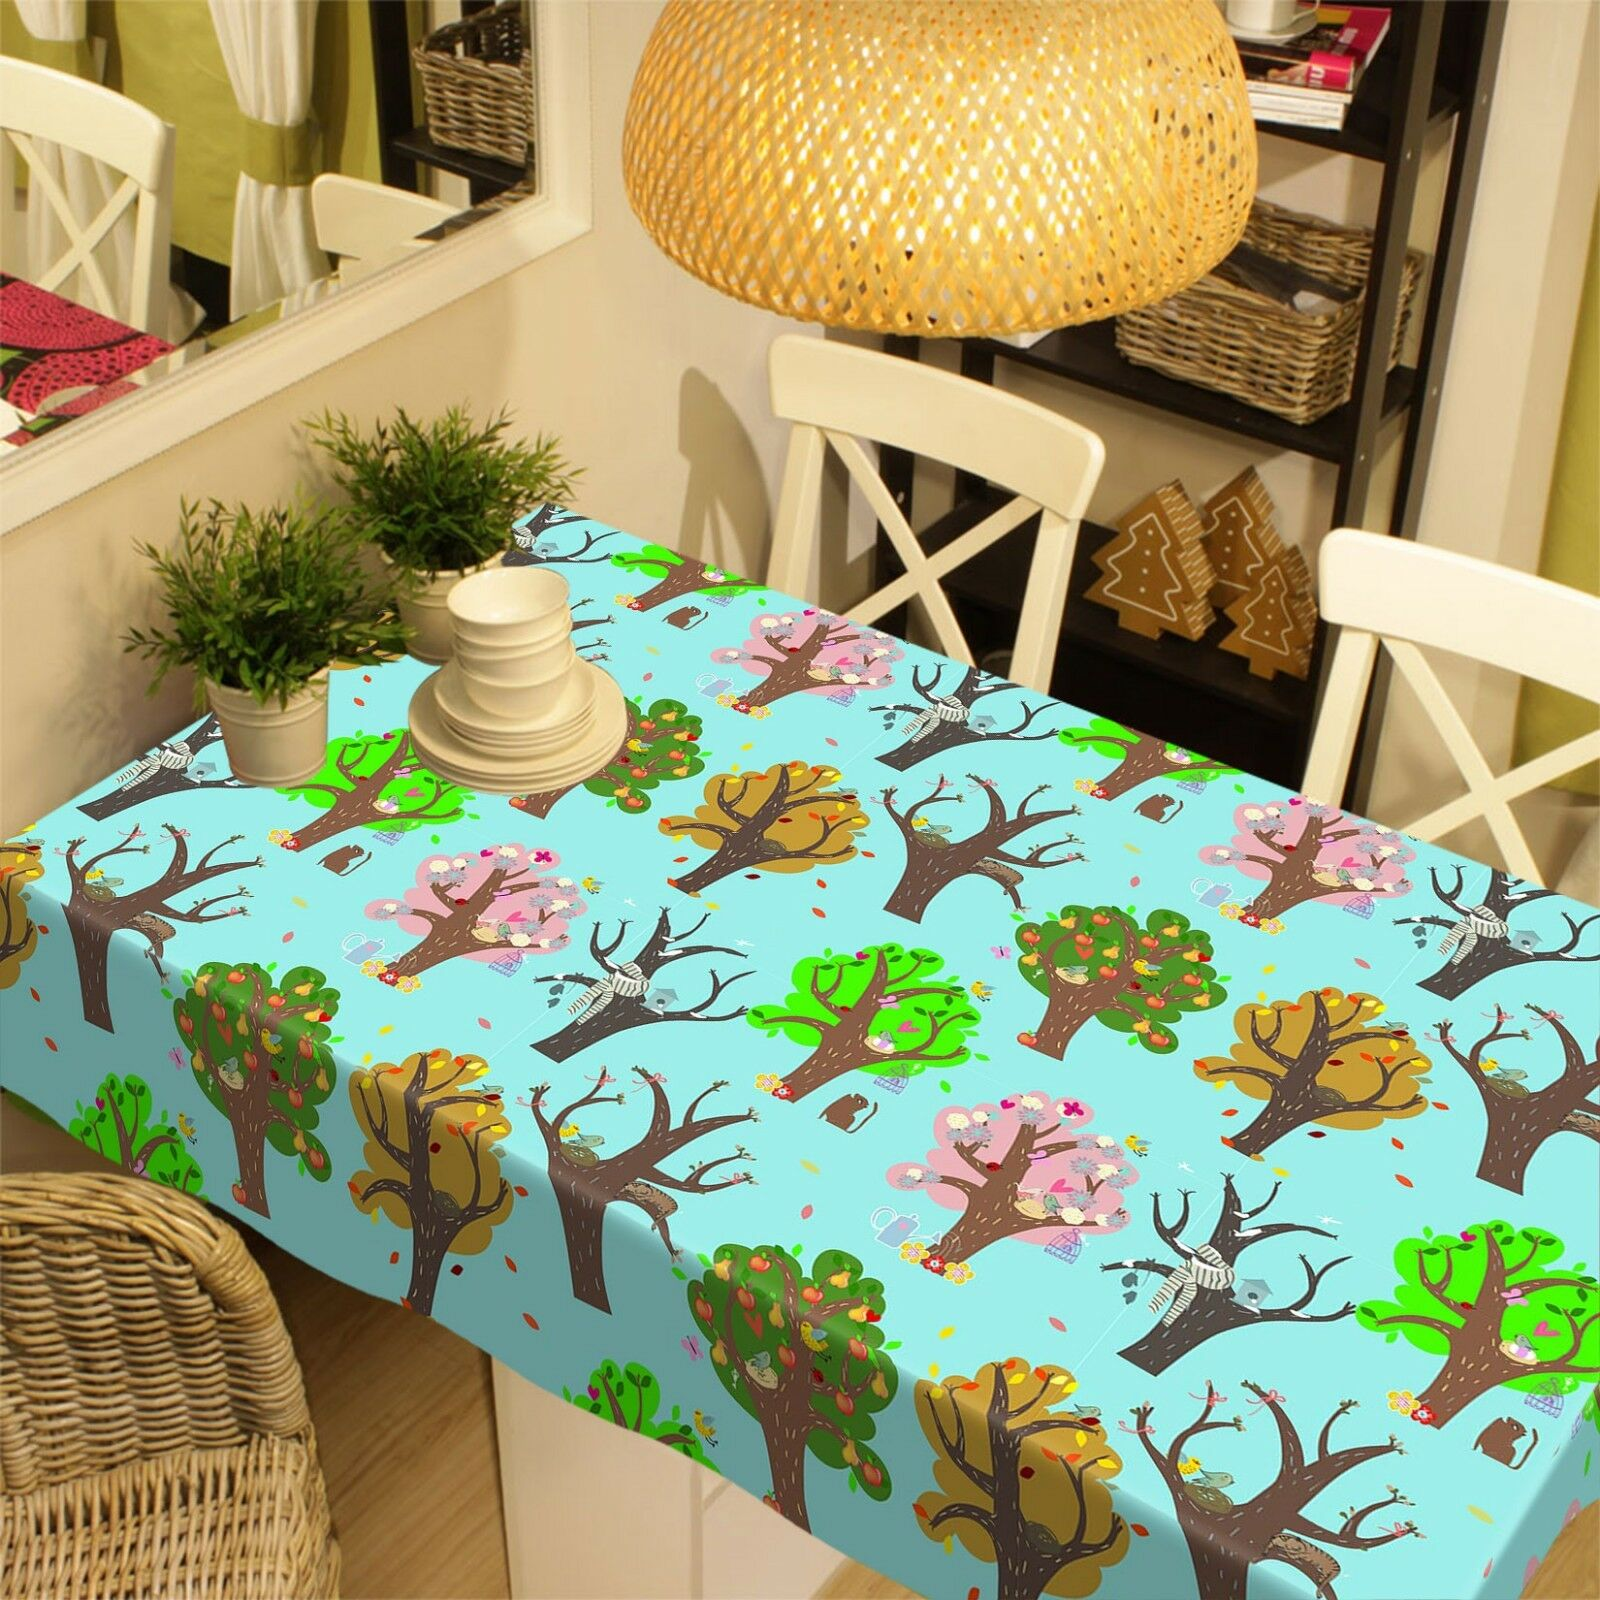 3D Painted Trees 09 Tablecloth Table Cover Cloth Birthday Party Event AJ Jenny